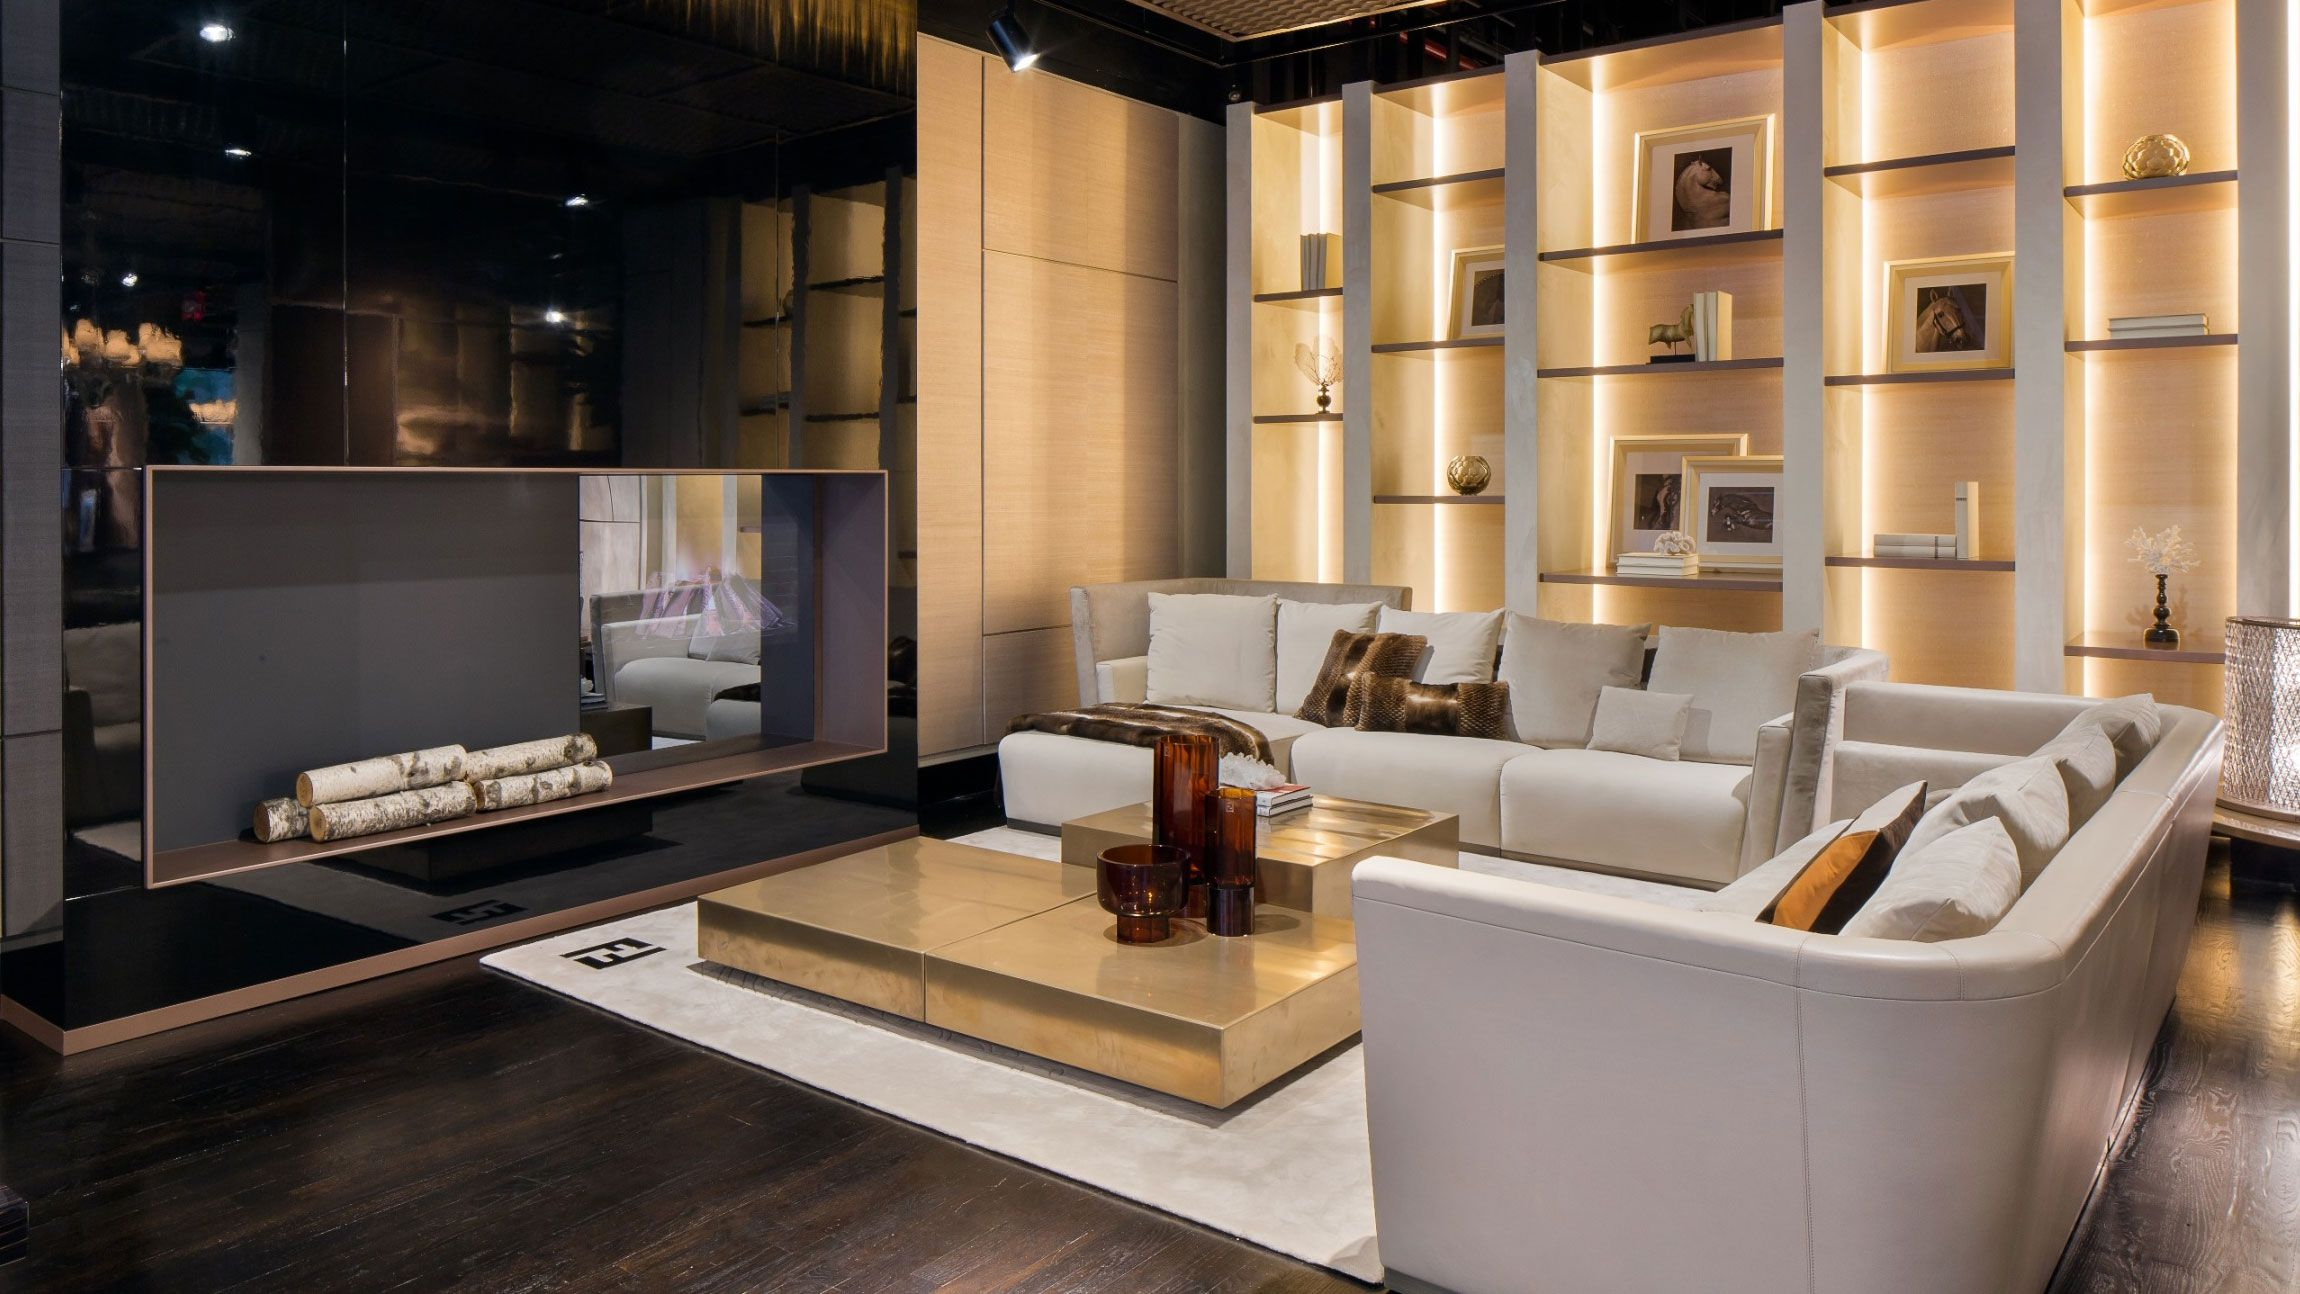 For now Fendi Casa and Kitchen Bentley Home and Heritage Collection are the only lines included in the New York based showroom but the company plans to ... & Luxury Living Opens New York Showroom- Luxury Living and Fendi Casa ...